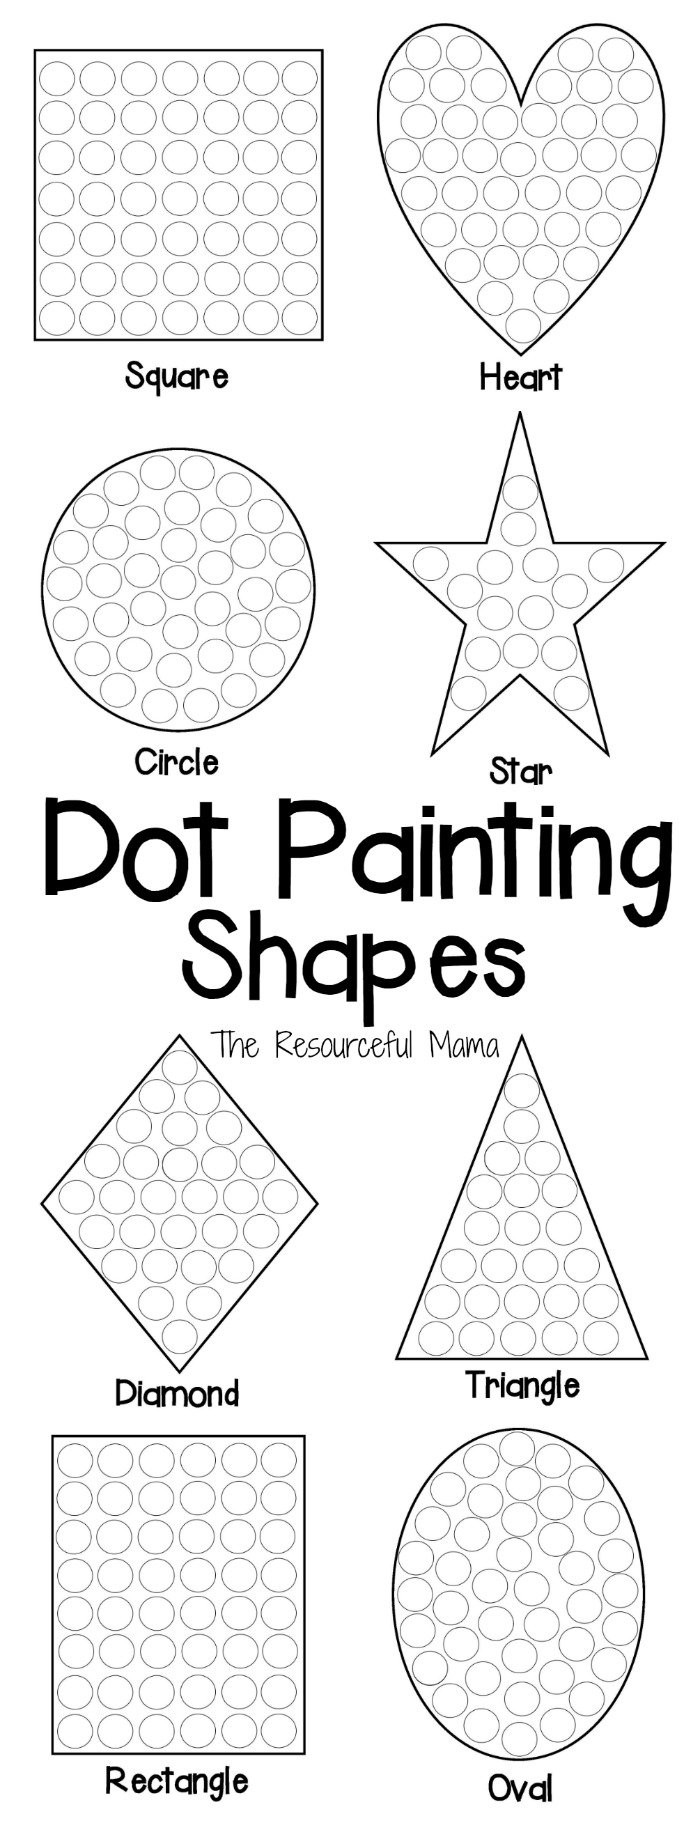 Diamond Worksheets for Preschool Shapes Dot Painting Free Printable the Resourceful Mama